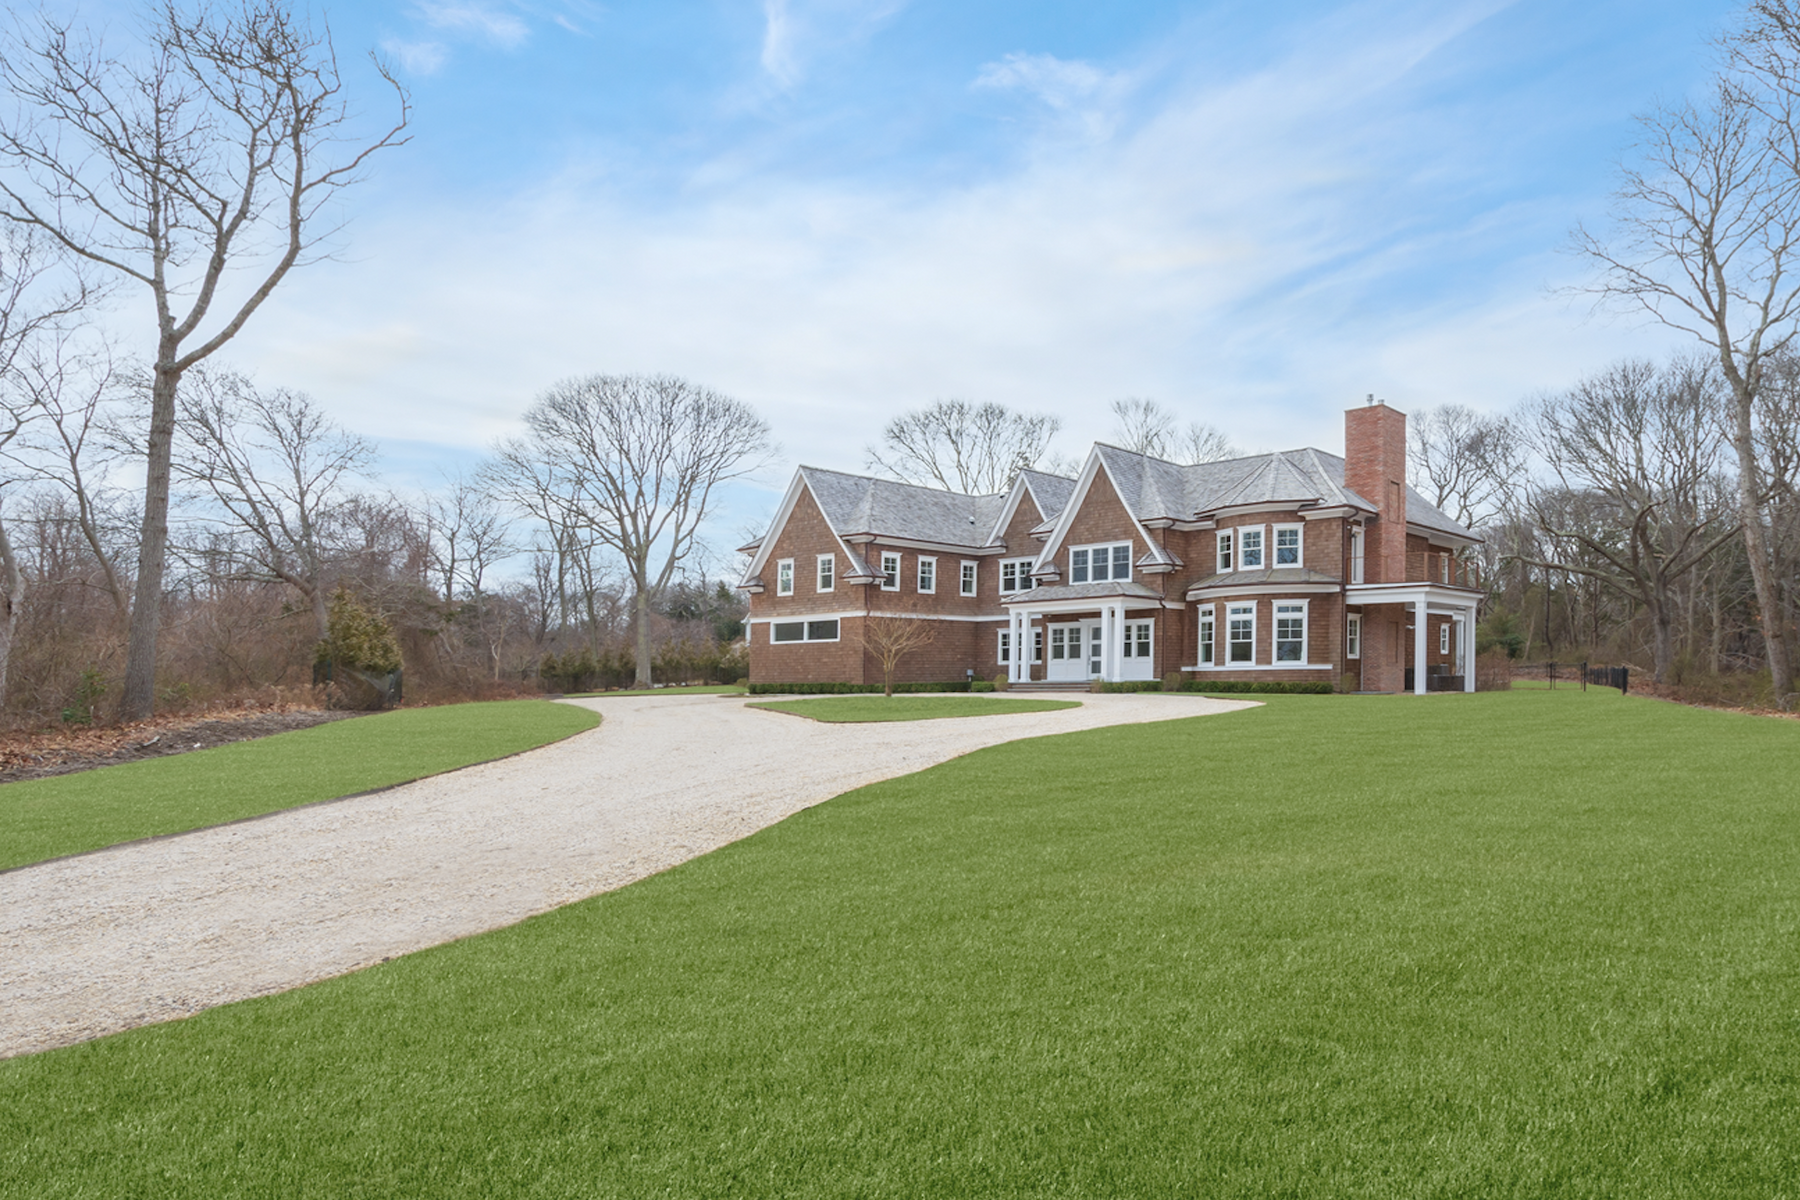 Single Family Home for Active at New Construction Across From Bay 9 Seaponack Drive Sag Harbor, New York 11963 United States